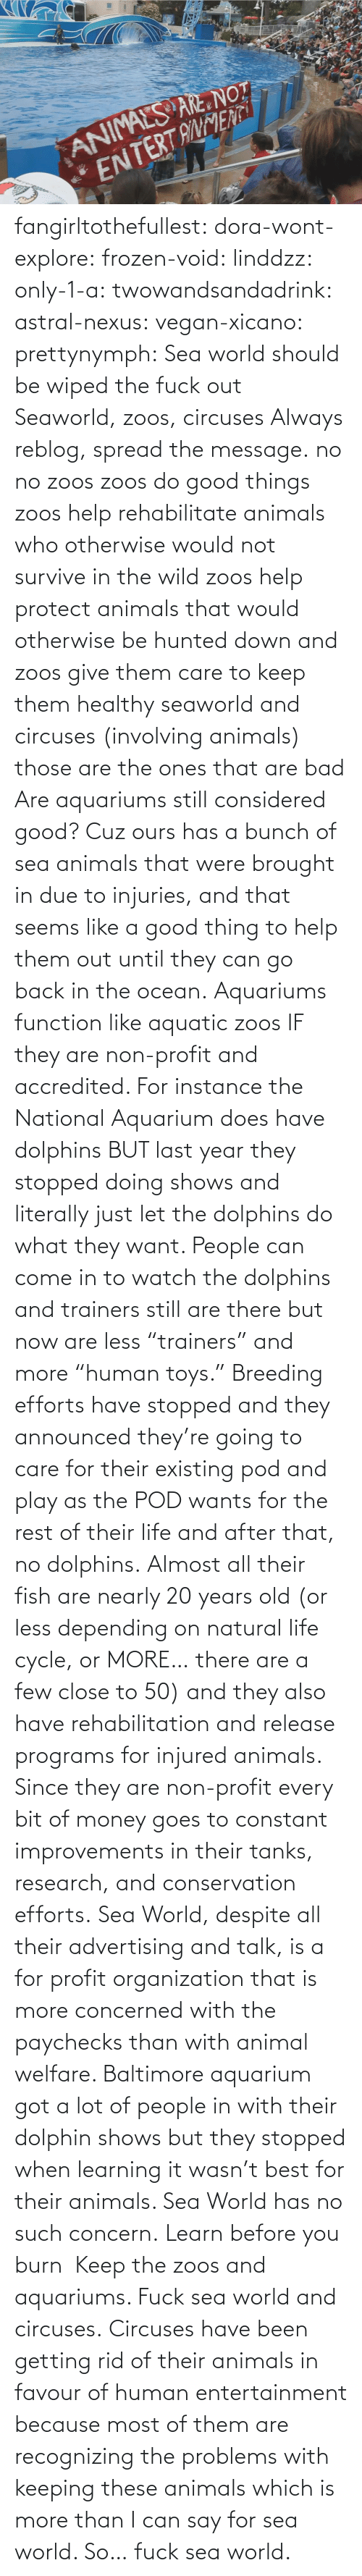 "Survive: fangirltothefullest:  dora-wont-explore:  frozen-void:  linddzz:  only-1-a:  twowandsandadrink:  astral-nexus:  vegan-xicano:  prettynymph:  Sea world should be wiped the fuck out  Seaworld, zoos, circuses  Always reblog, spread the message.  no no zoos zoos do good things zoos help rehabilitate animals who otherwise would not survive in the wild zoos help protect animals that would otherwise be hunted down and zoos give them care to keep them healthy seaworld and circuses (involving animals) those are the ones that are bad  Are aquariums still considered good? Cuz ours has a bunch of sea animals that were brought in due to injuries, and that seems like a good thing to help them out until they can go back in the ocean.  Aquariums function like aquatic zoos IF they are non-profit and accredited. For instance the National Aquarium does have dolphins BUT last year they stopped doing shows and literally just let the dolphins do what they want. People can come in to watch the dolphins and trainers still are there but now are less ""trainers"" and more ""human toys."" Breeding efforts have stopped and they announced they're going to care for their existing pod and play as the POD wants for the rest of their life and after that, no dolphins. Almost all their fish are nearly 20 years old (or less depending on natural life cycle, or MORE… there are a few close to 50) and they also have rehabilitation and release programs for injured animals. Since they are non-profit every bit of money goes to constant improvements in their tanks, research, and conservation efforts. Sea World, despite all their advertising and talk, is a for profit organization that is more concerned with the paychecks than with animal welfare. Baltimore aquarium got a lot of people in with their dolphin shows but they stopped when learning it wasn't best for their animals. Sea World has no such concern.  Learn before you burn   Keep the zoos and aquariums. Fuck sea world and circuses.  Circuses have been getting rid of  their animals in favour of human entertainment because most of them are recognizing the problems with keeping these animals which is more than I can say for sea world. So… fuck sea world."